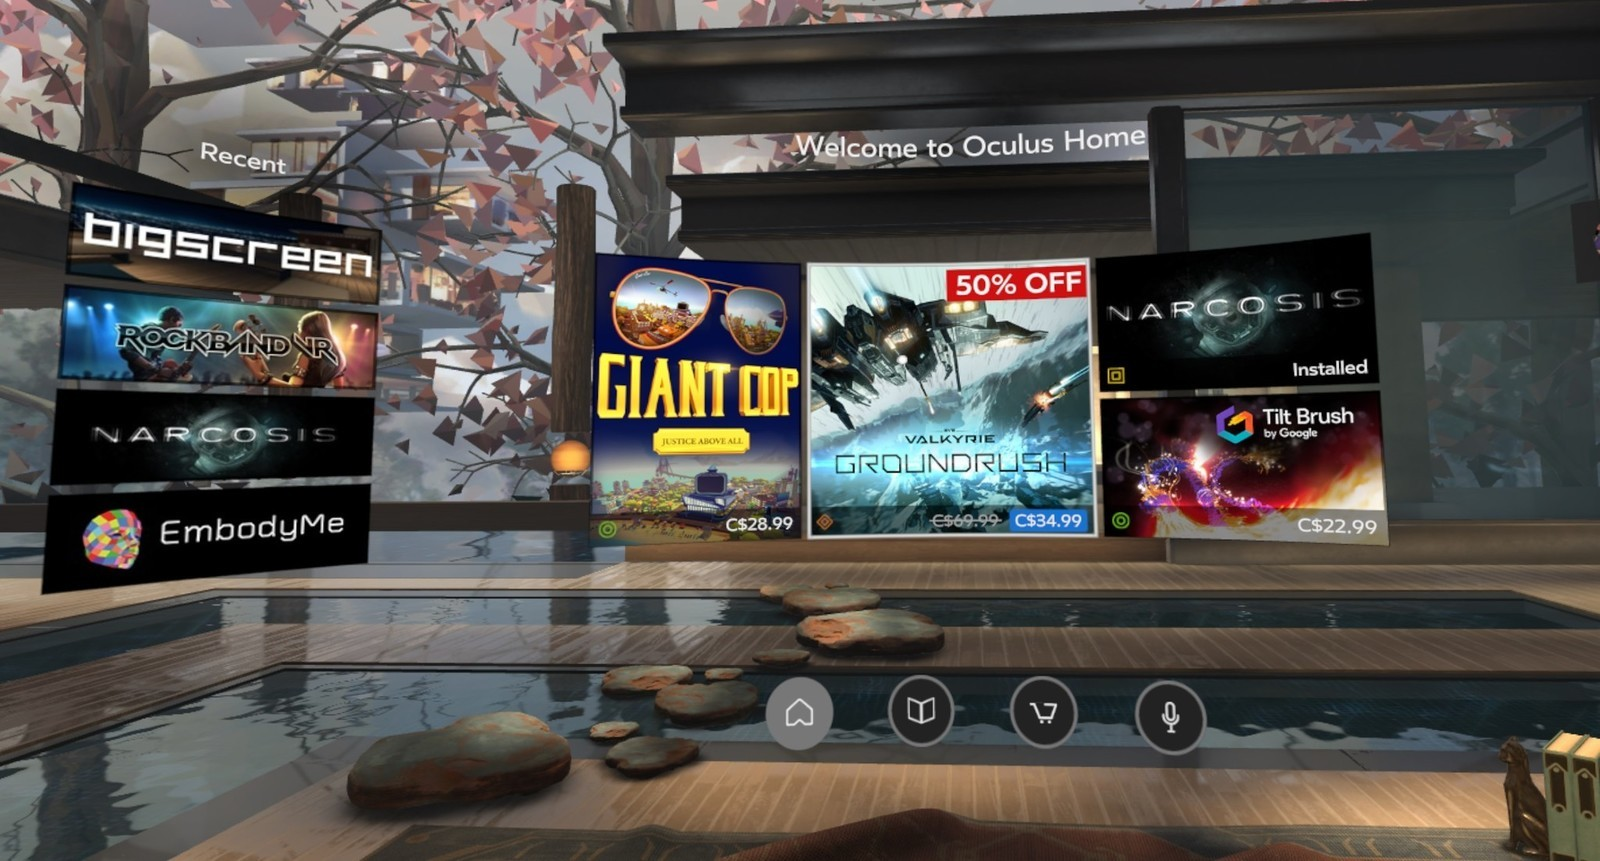 Original Oculus Home